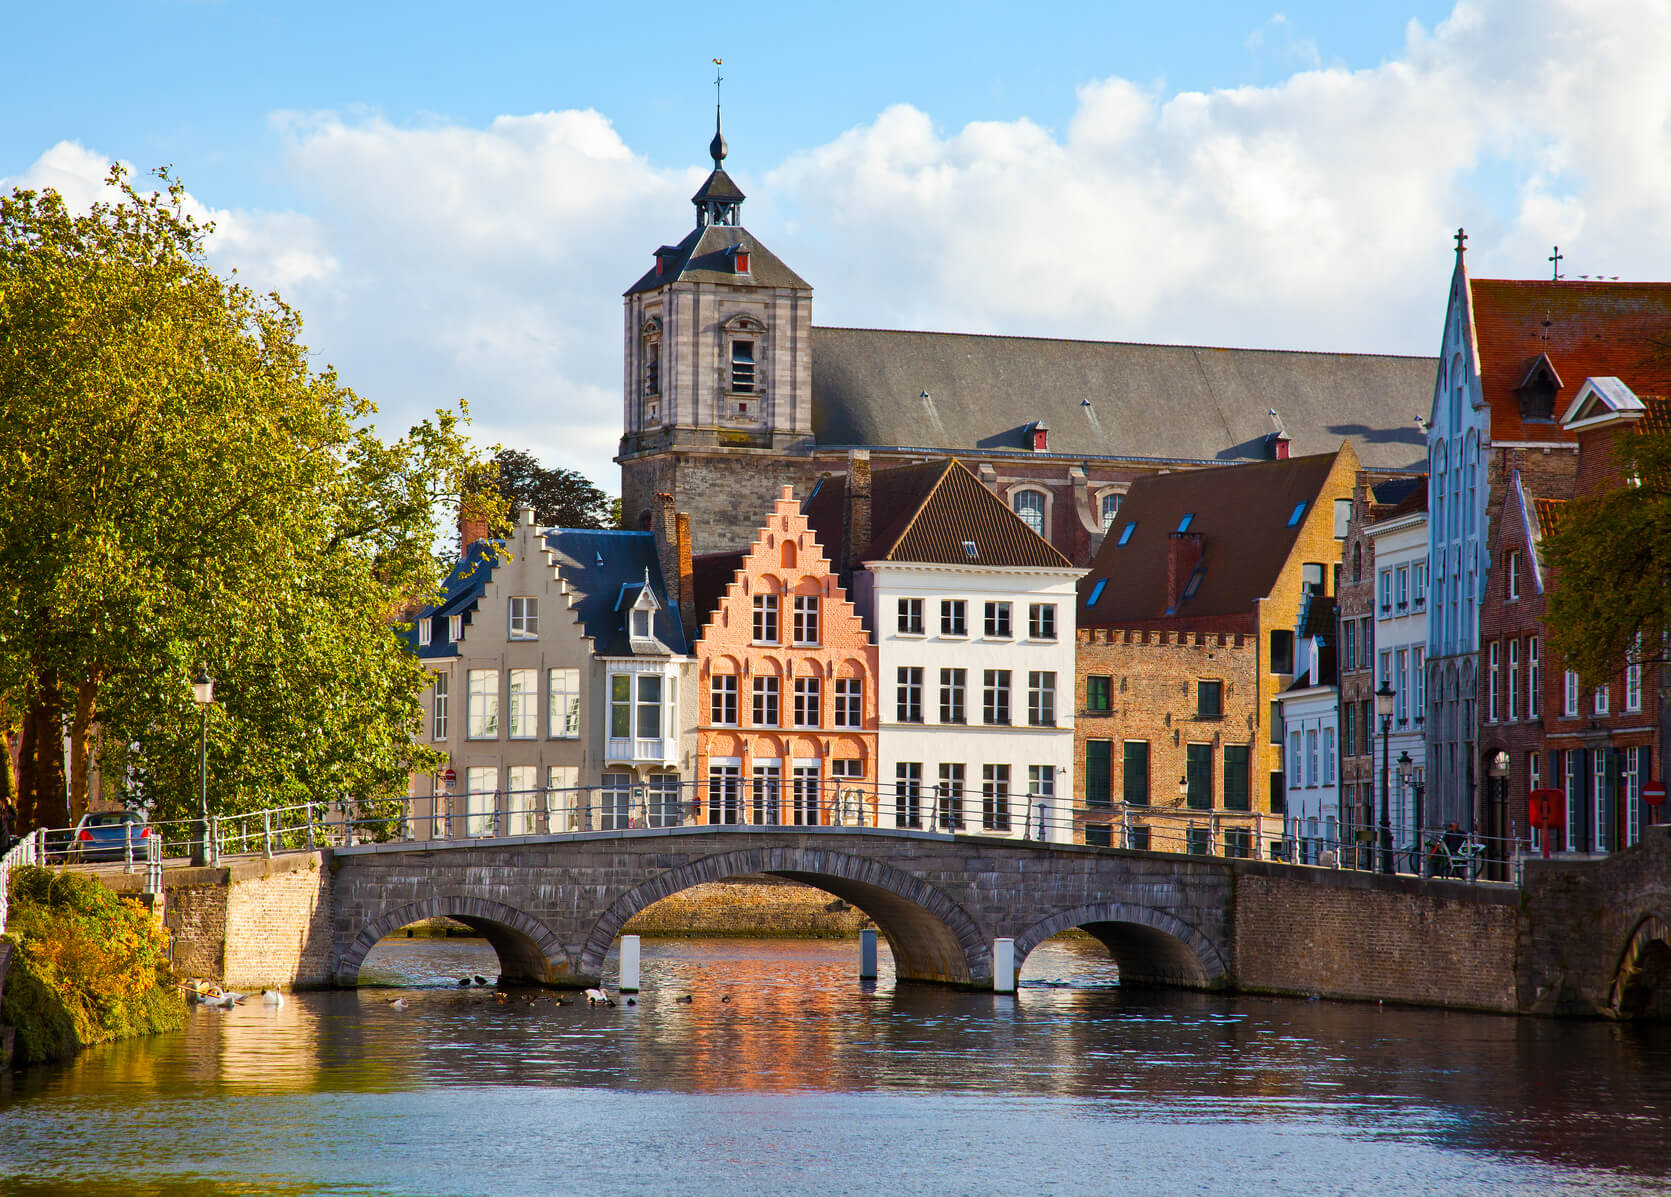 HOT!! Montreal, Canada to Brussels, Belgium for only $376 CAD roundtrip (Sep dates)